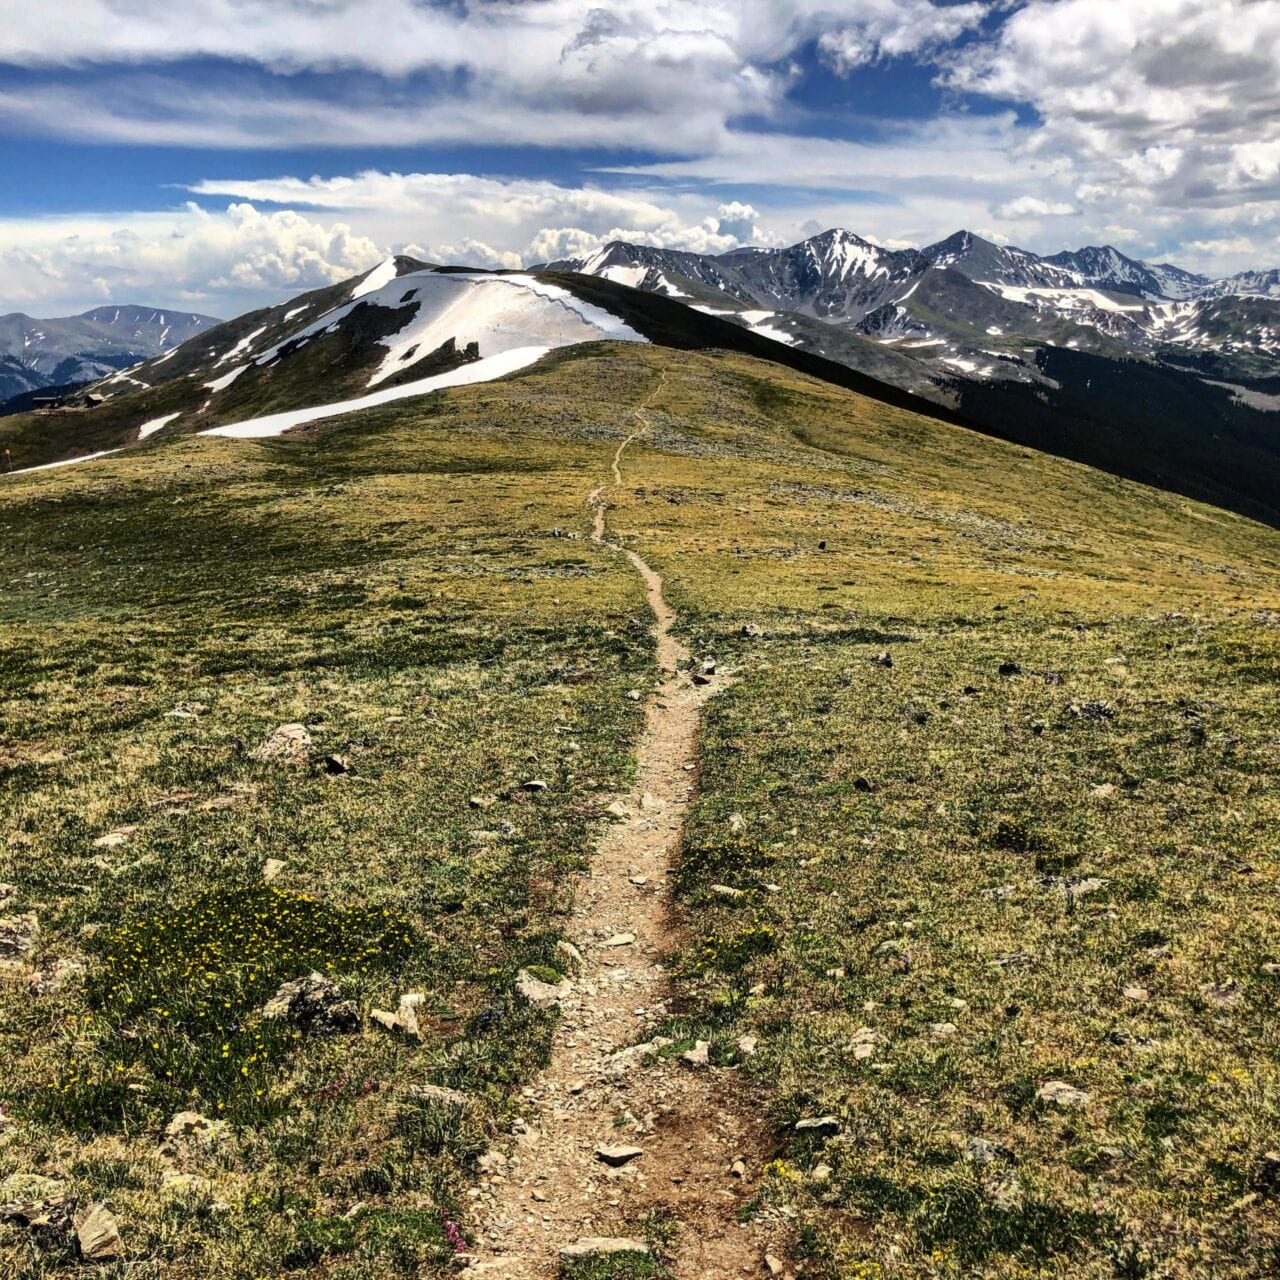 A view of a trail in the mountains.